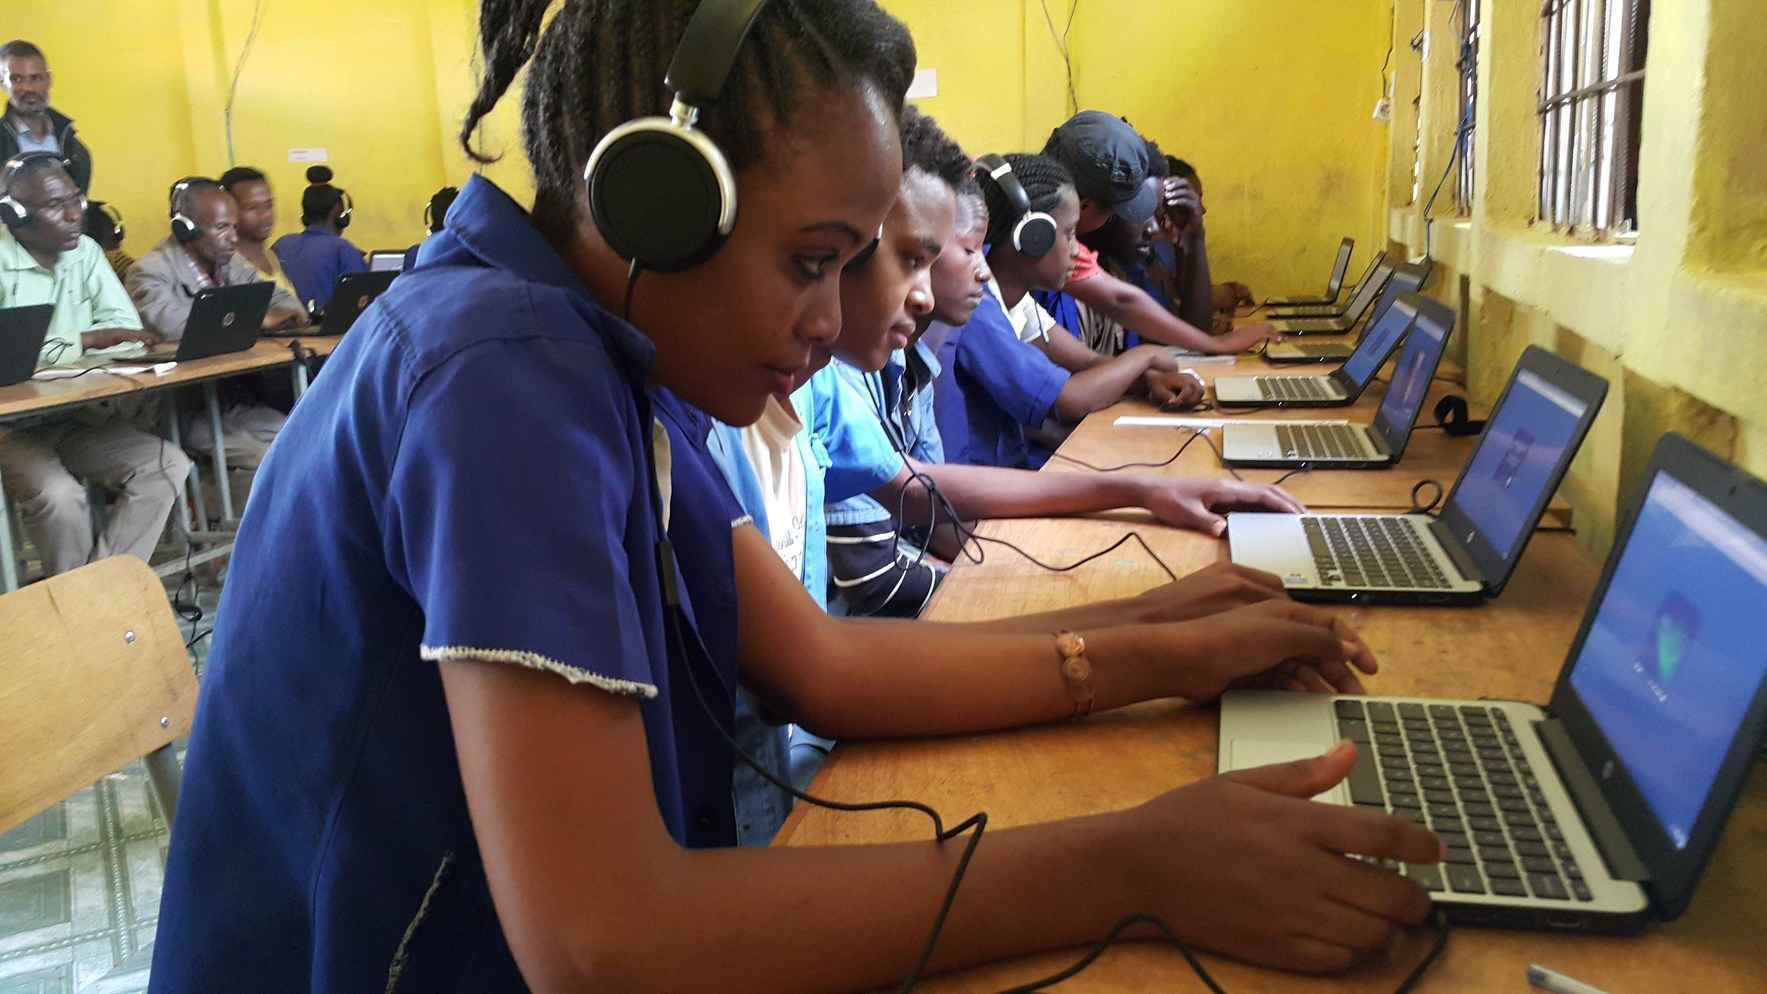 Give 100,000 of the smartest and brightest students of rural Ethiopia access to the technology they need. image